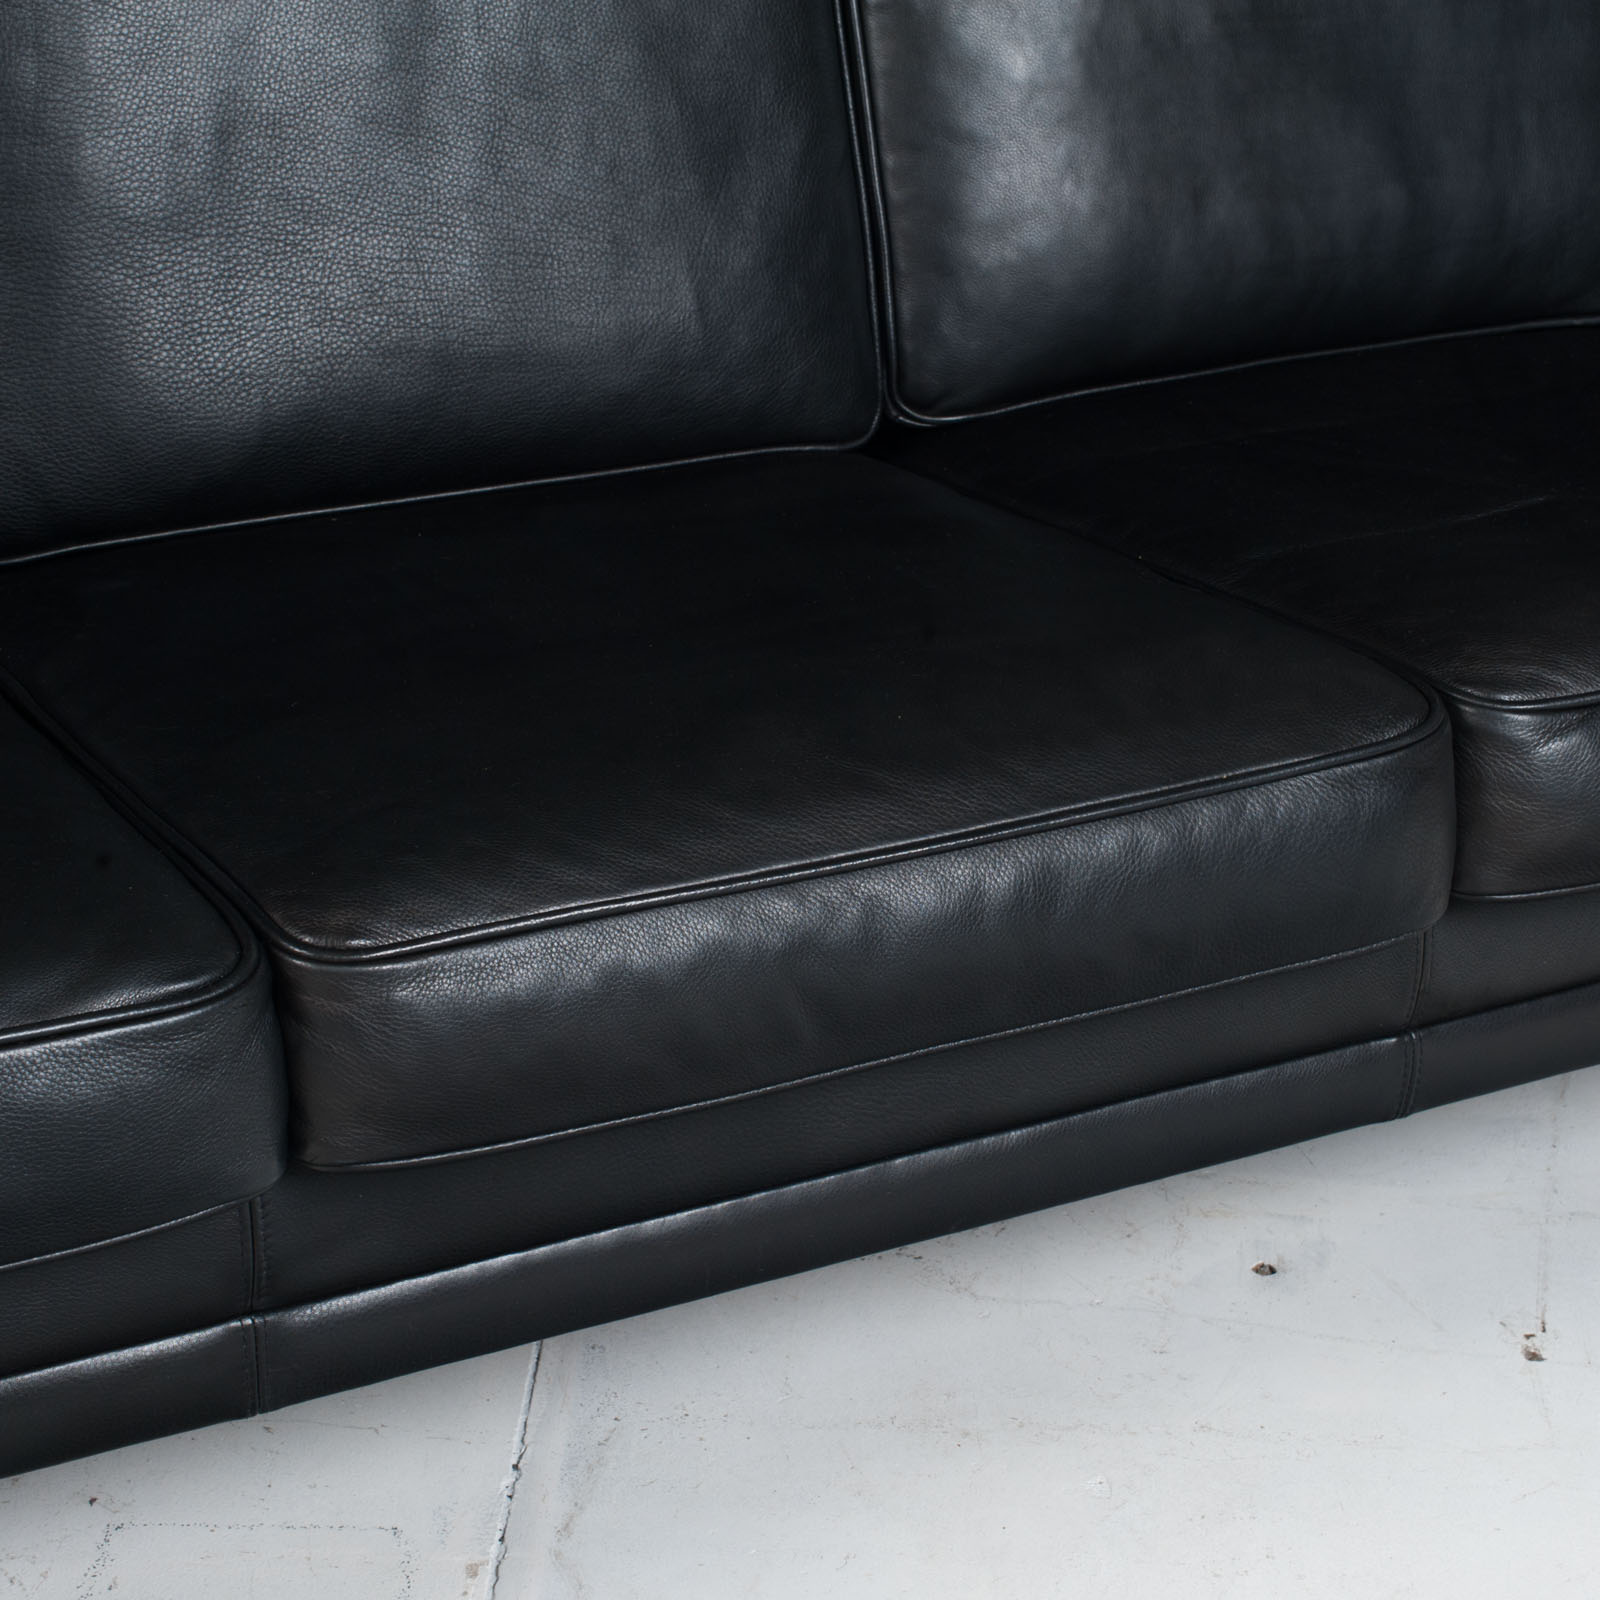 3 Seat Sofa In Black Aniline Leather 1960s Denmark 11